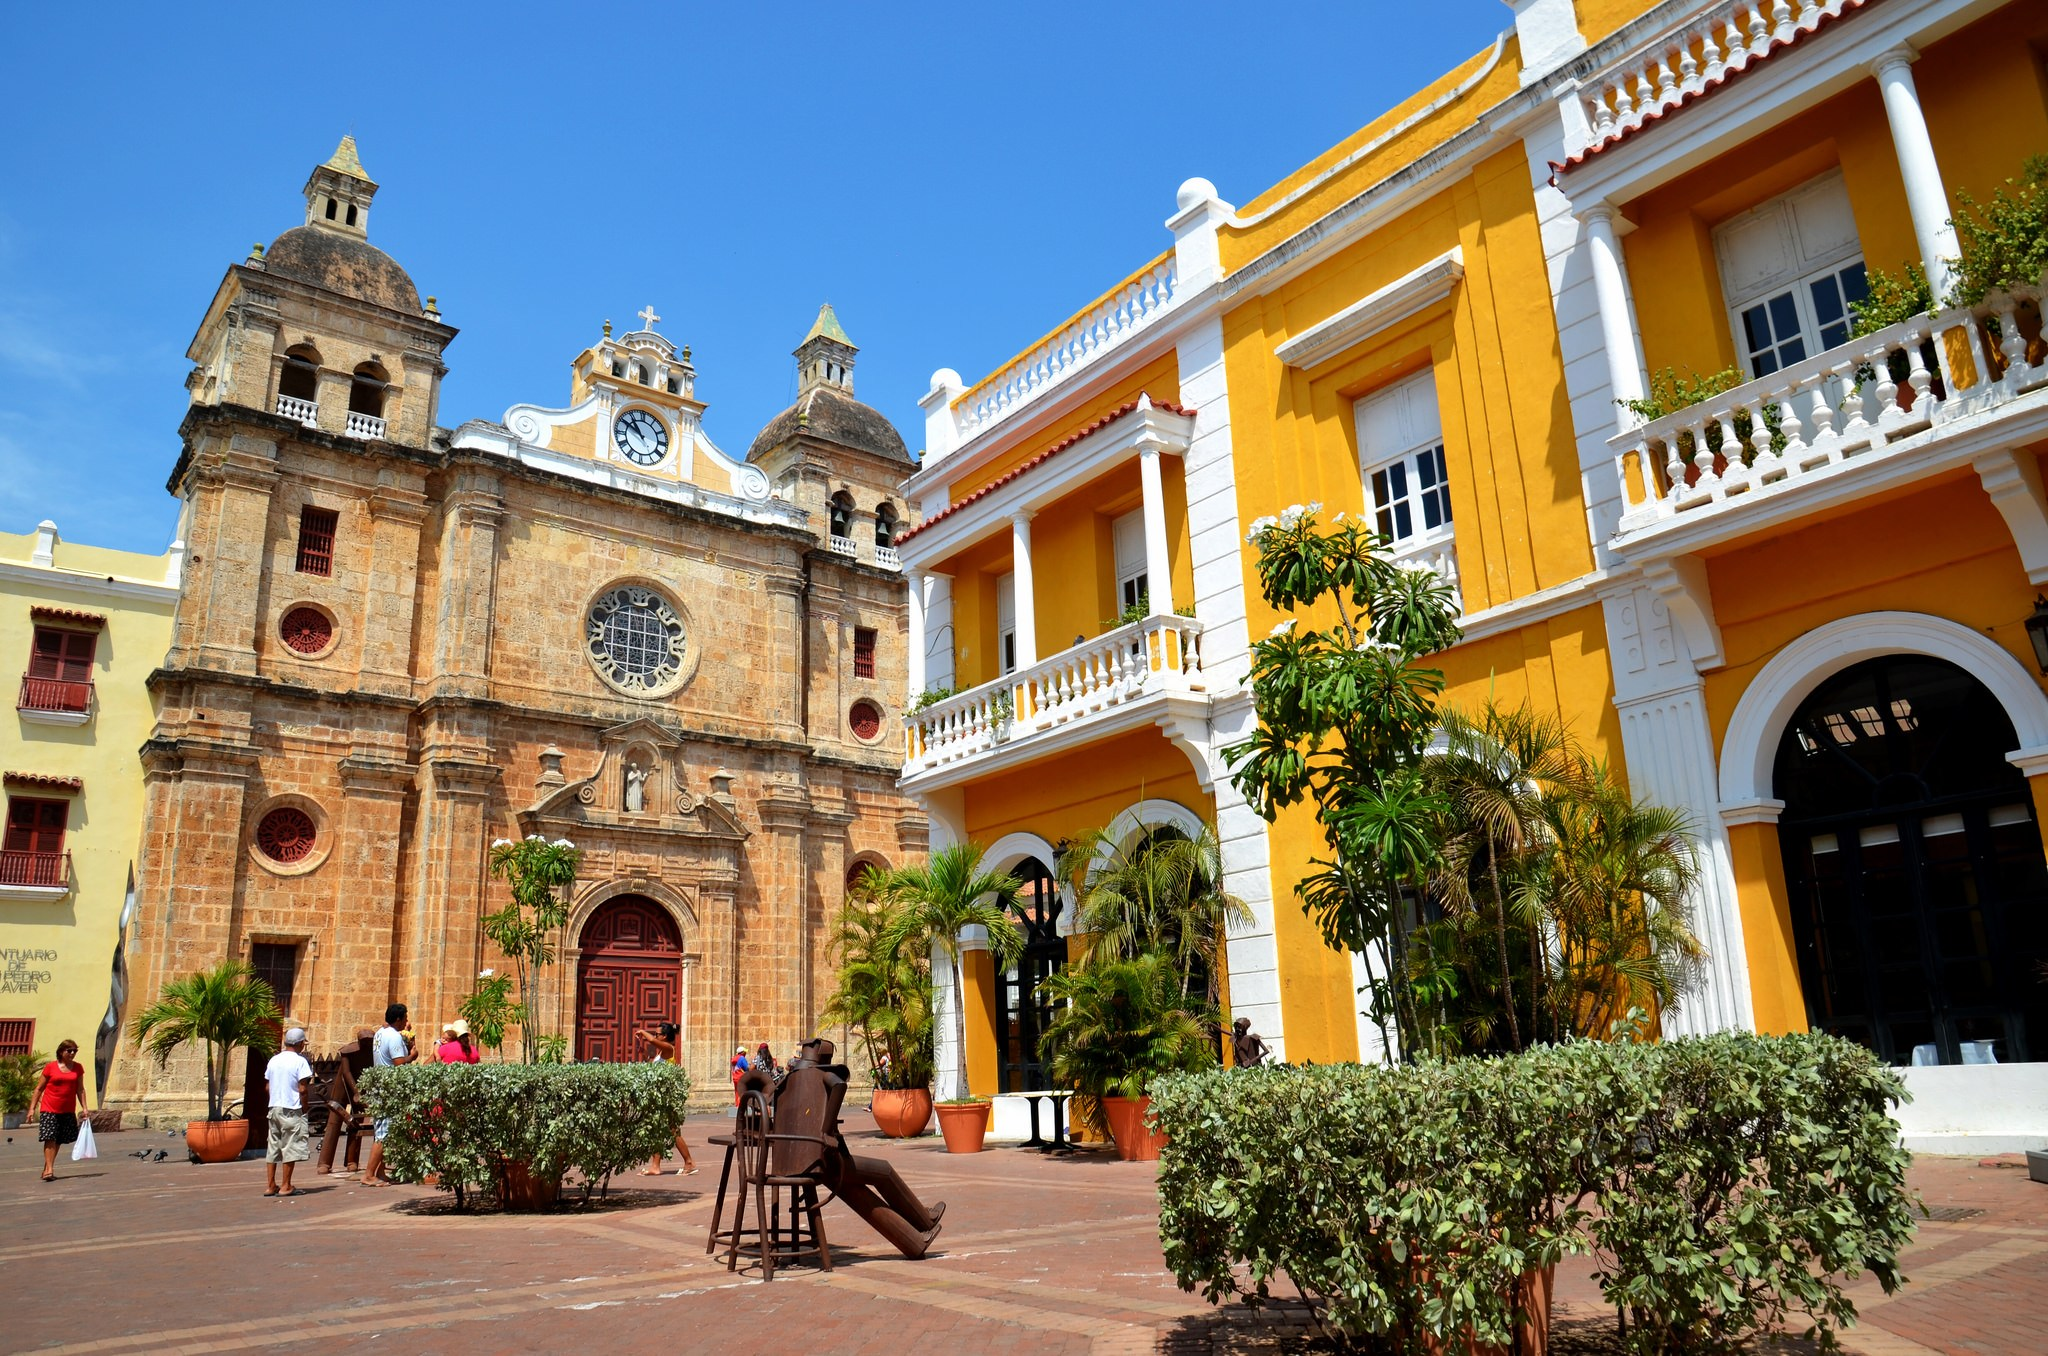 3. Cartagena,Colombia - This port city situated on Colombia's Caribbean coast offers the best of both worlds (or vibes, to quote Drake once again)the Latin flavor of South America with the tropical ambiance of the Islands.The walled Old Town has enough charming cobblestone to rival the streets of Rome, and the lush beaches of Isla de Barúand the Islas del Rosario are a mere boat ride away.